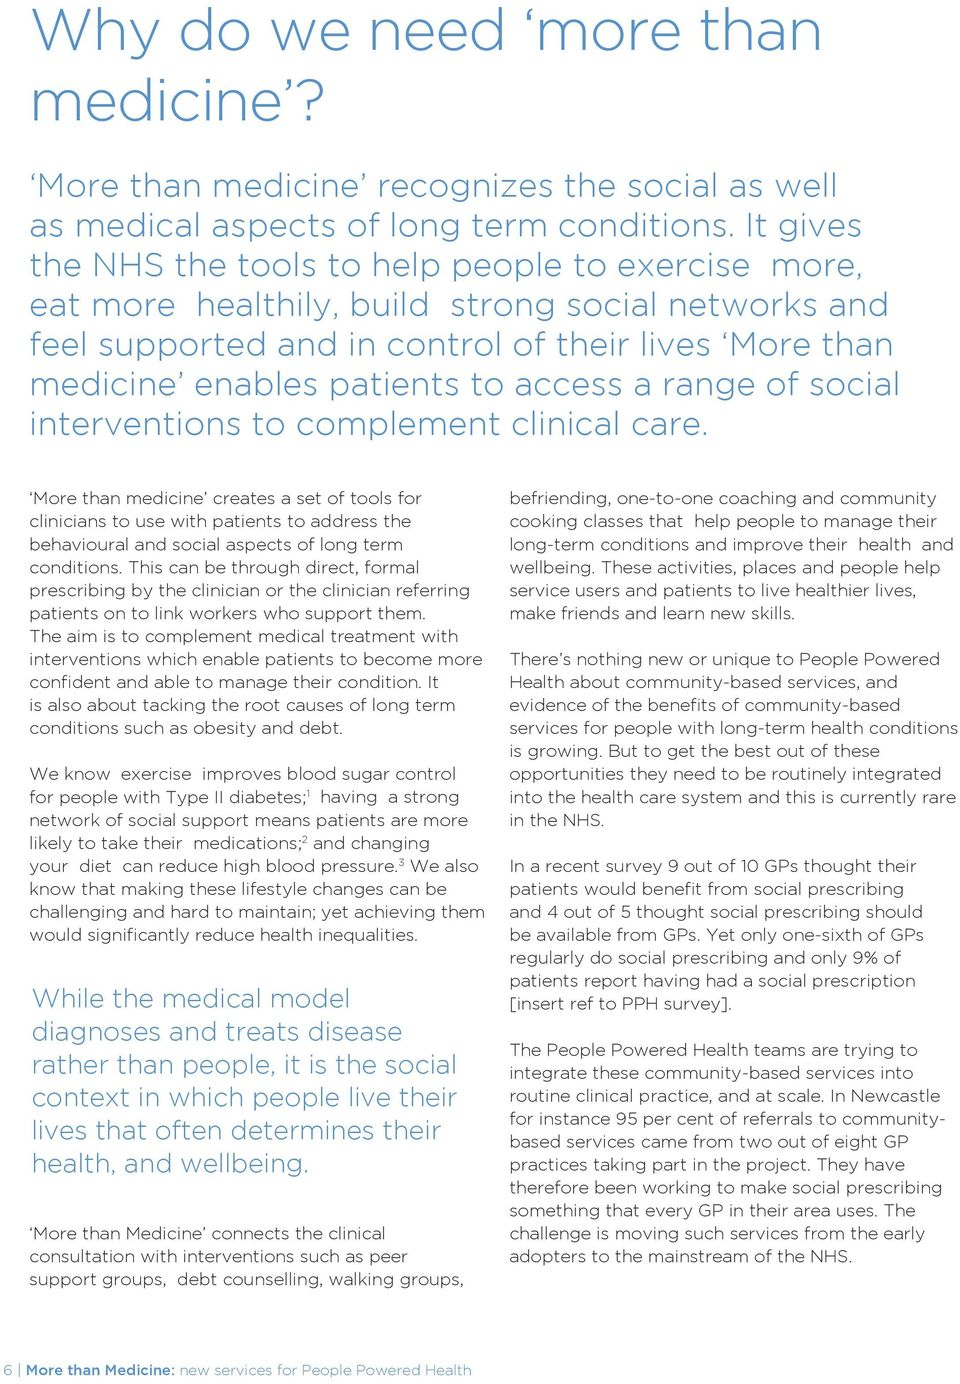 access a range of social interventions to complement clinical care.